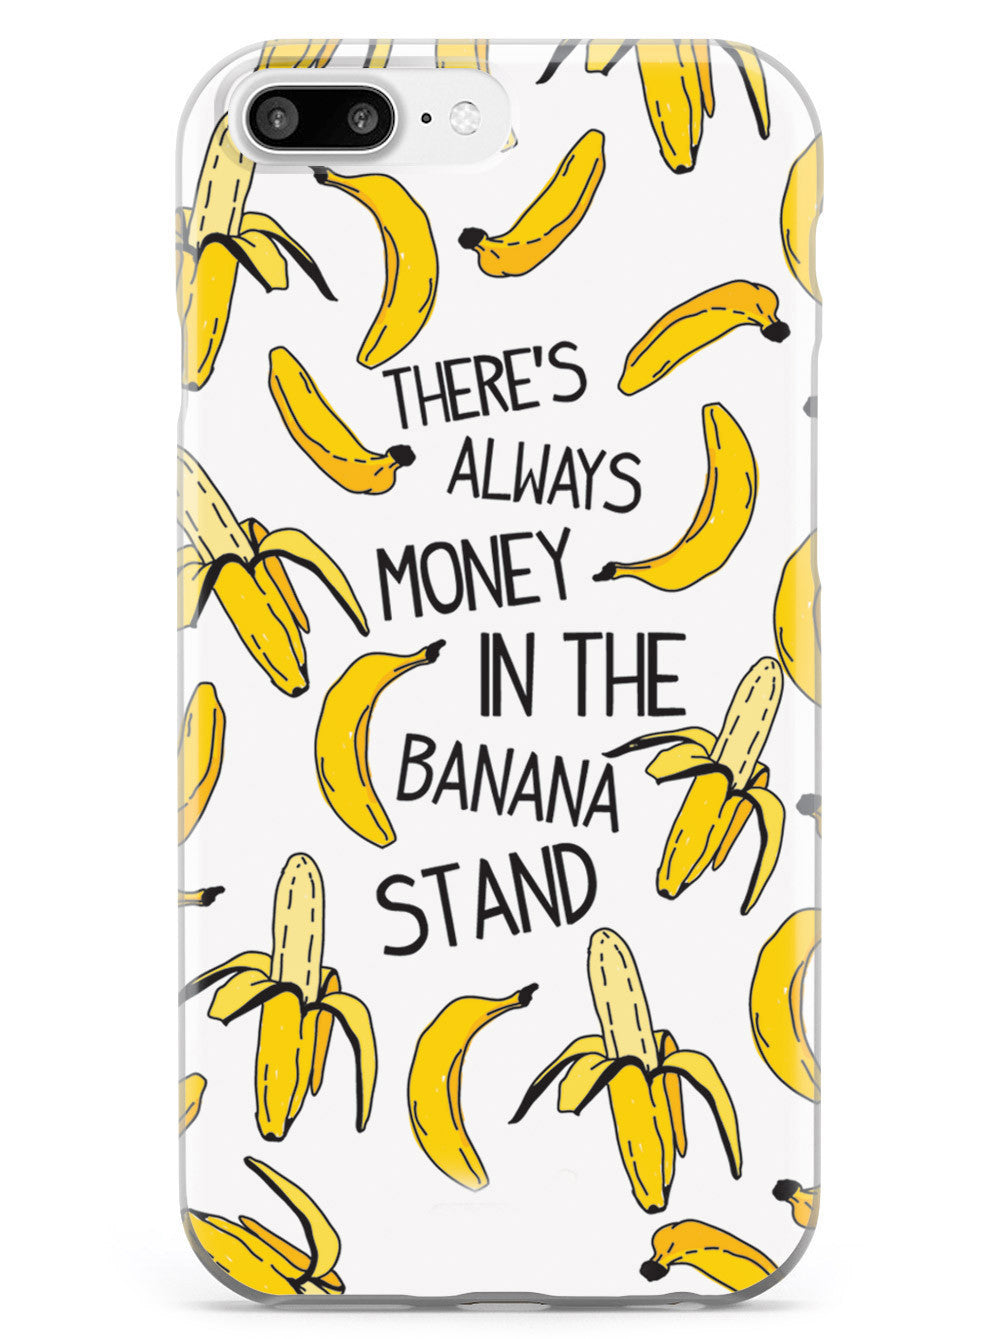 There's Always Money in the Banana Stand Case